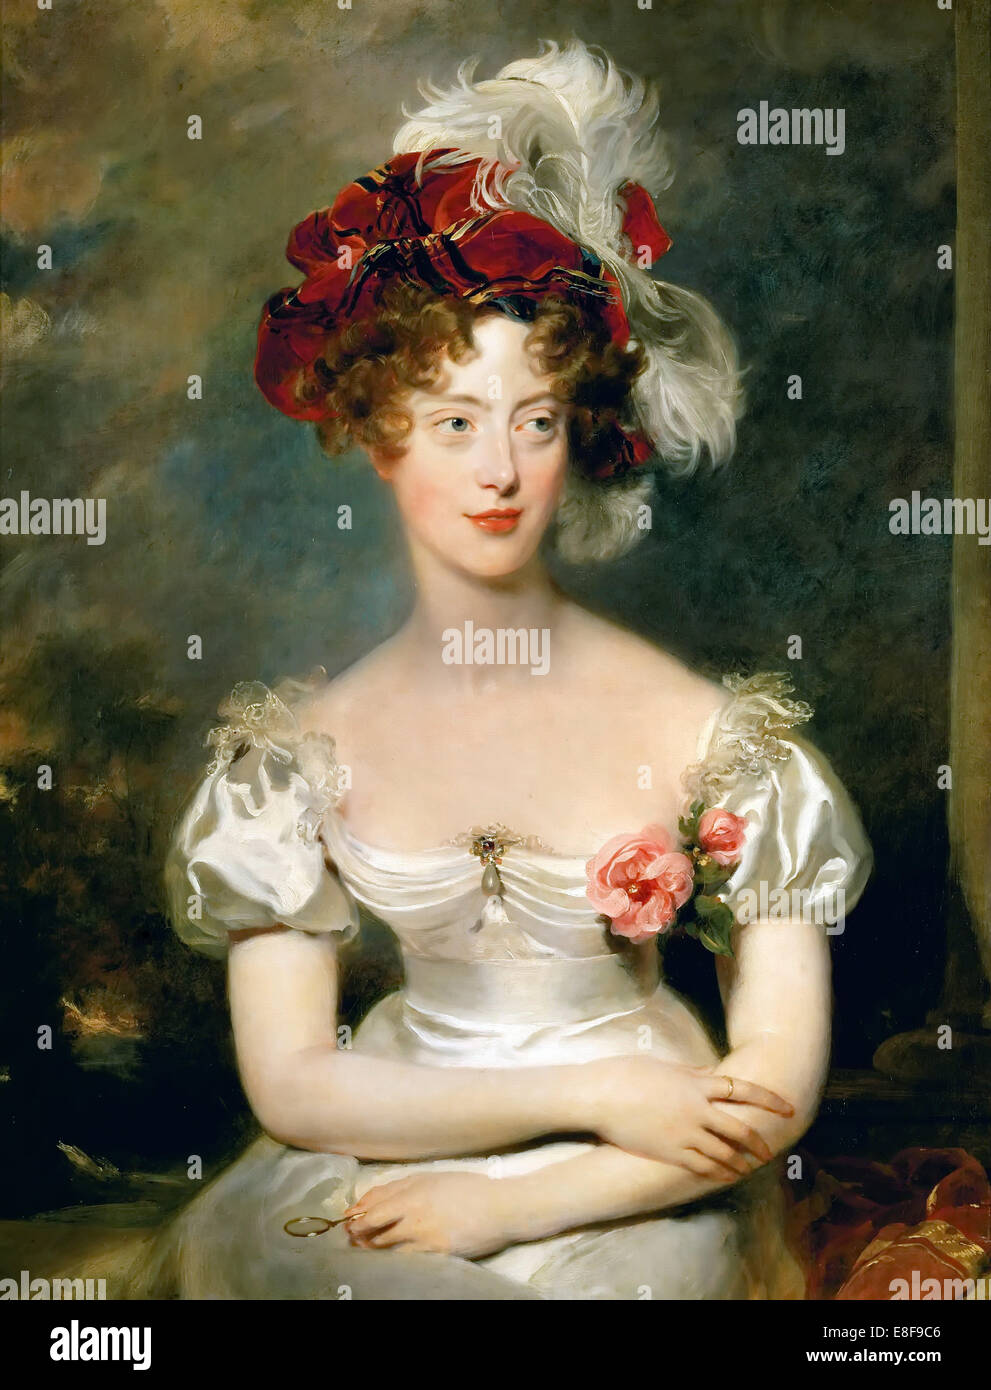 Princess Caroline of Naples and Sicily (1798-1870), Duchesse de Berry. Artist: Lawrence, Sir Thomas (1769-1830) - Stock Image